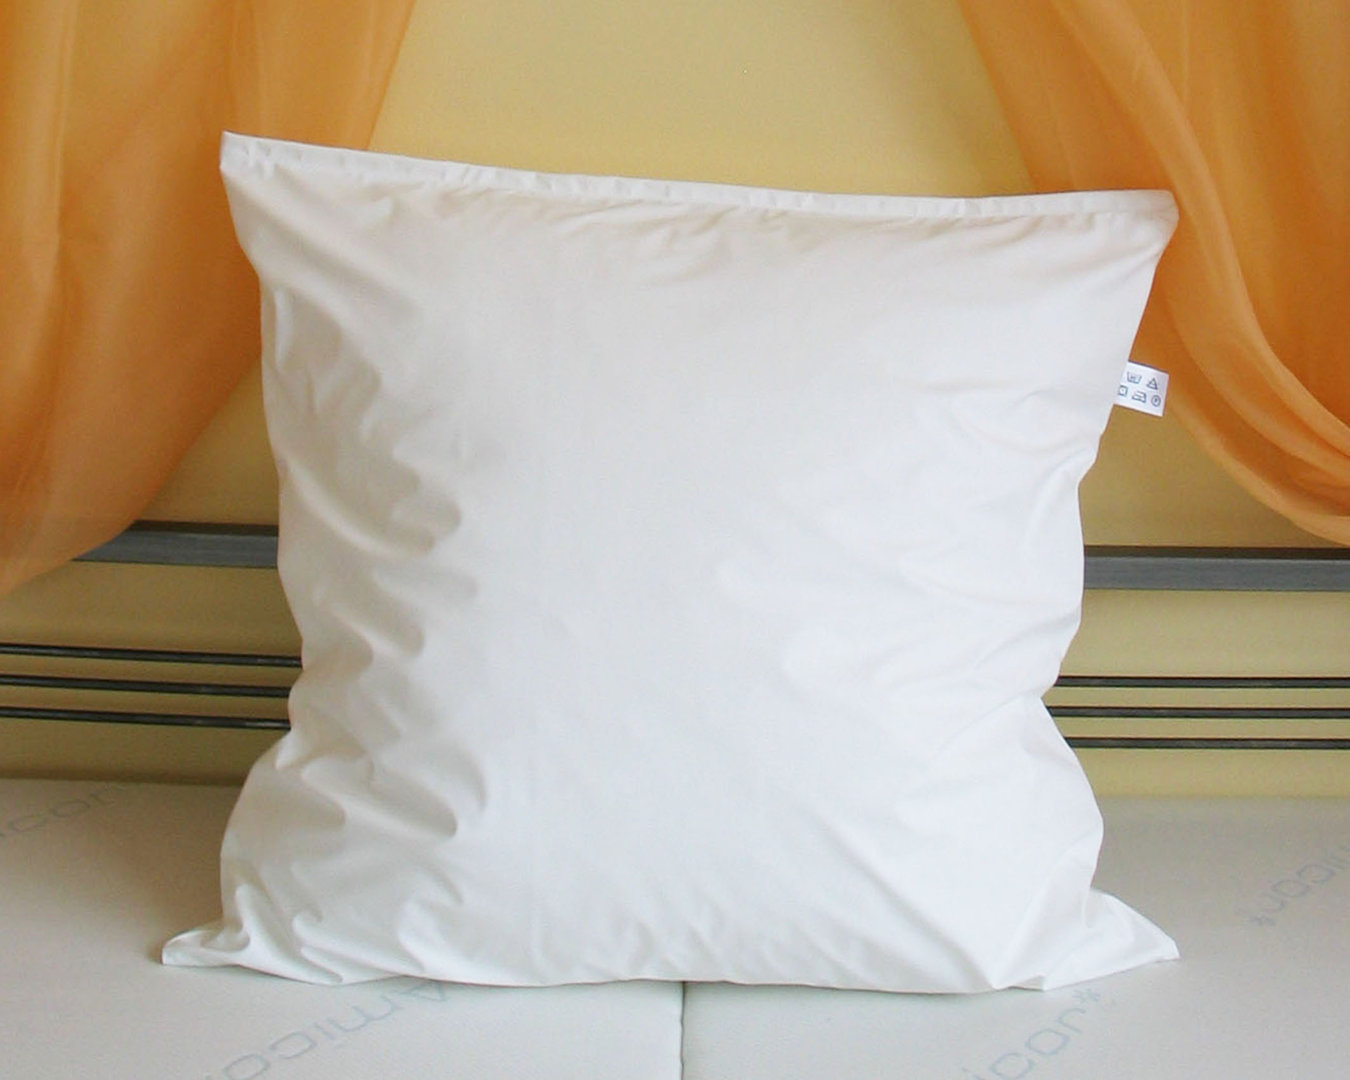 Pillow Encasement made of PU/Full Protection (Incontinence)